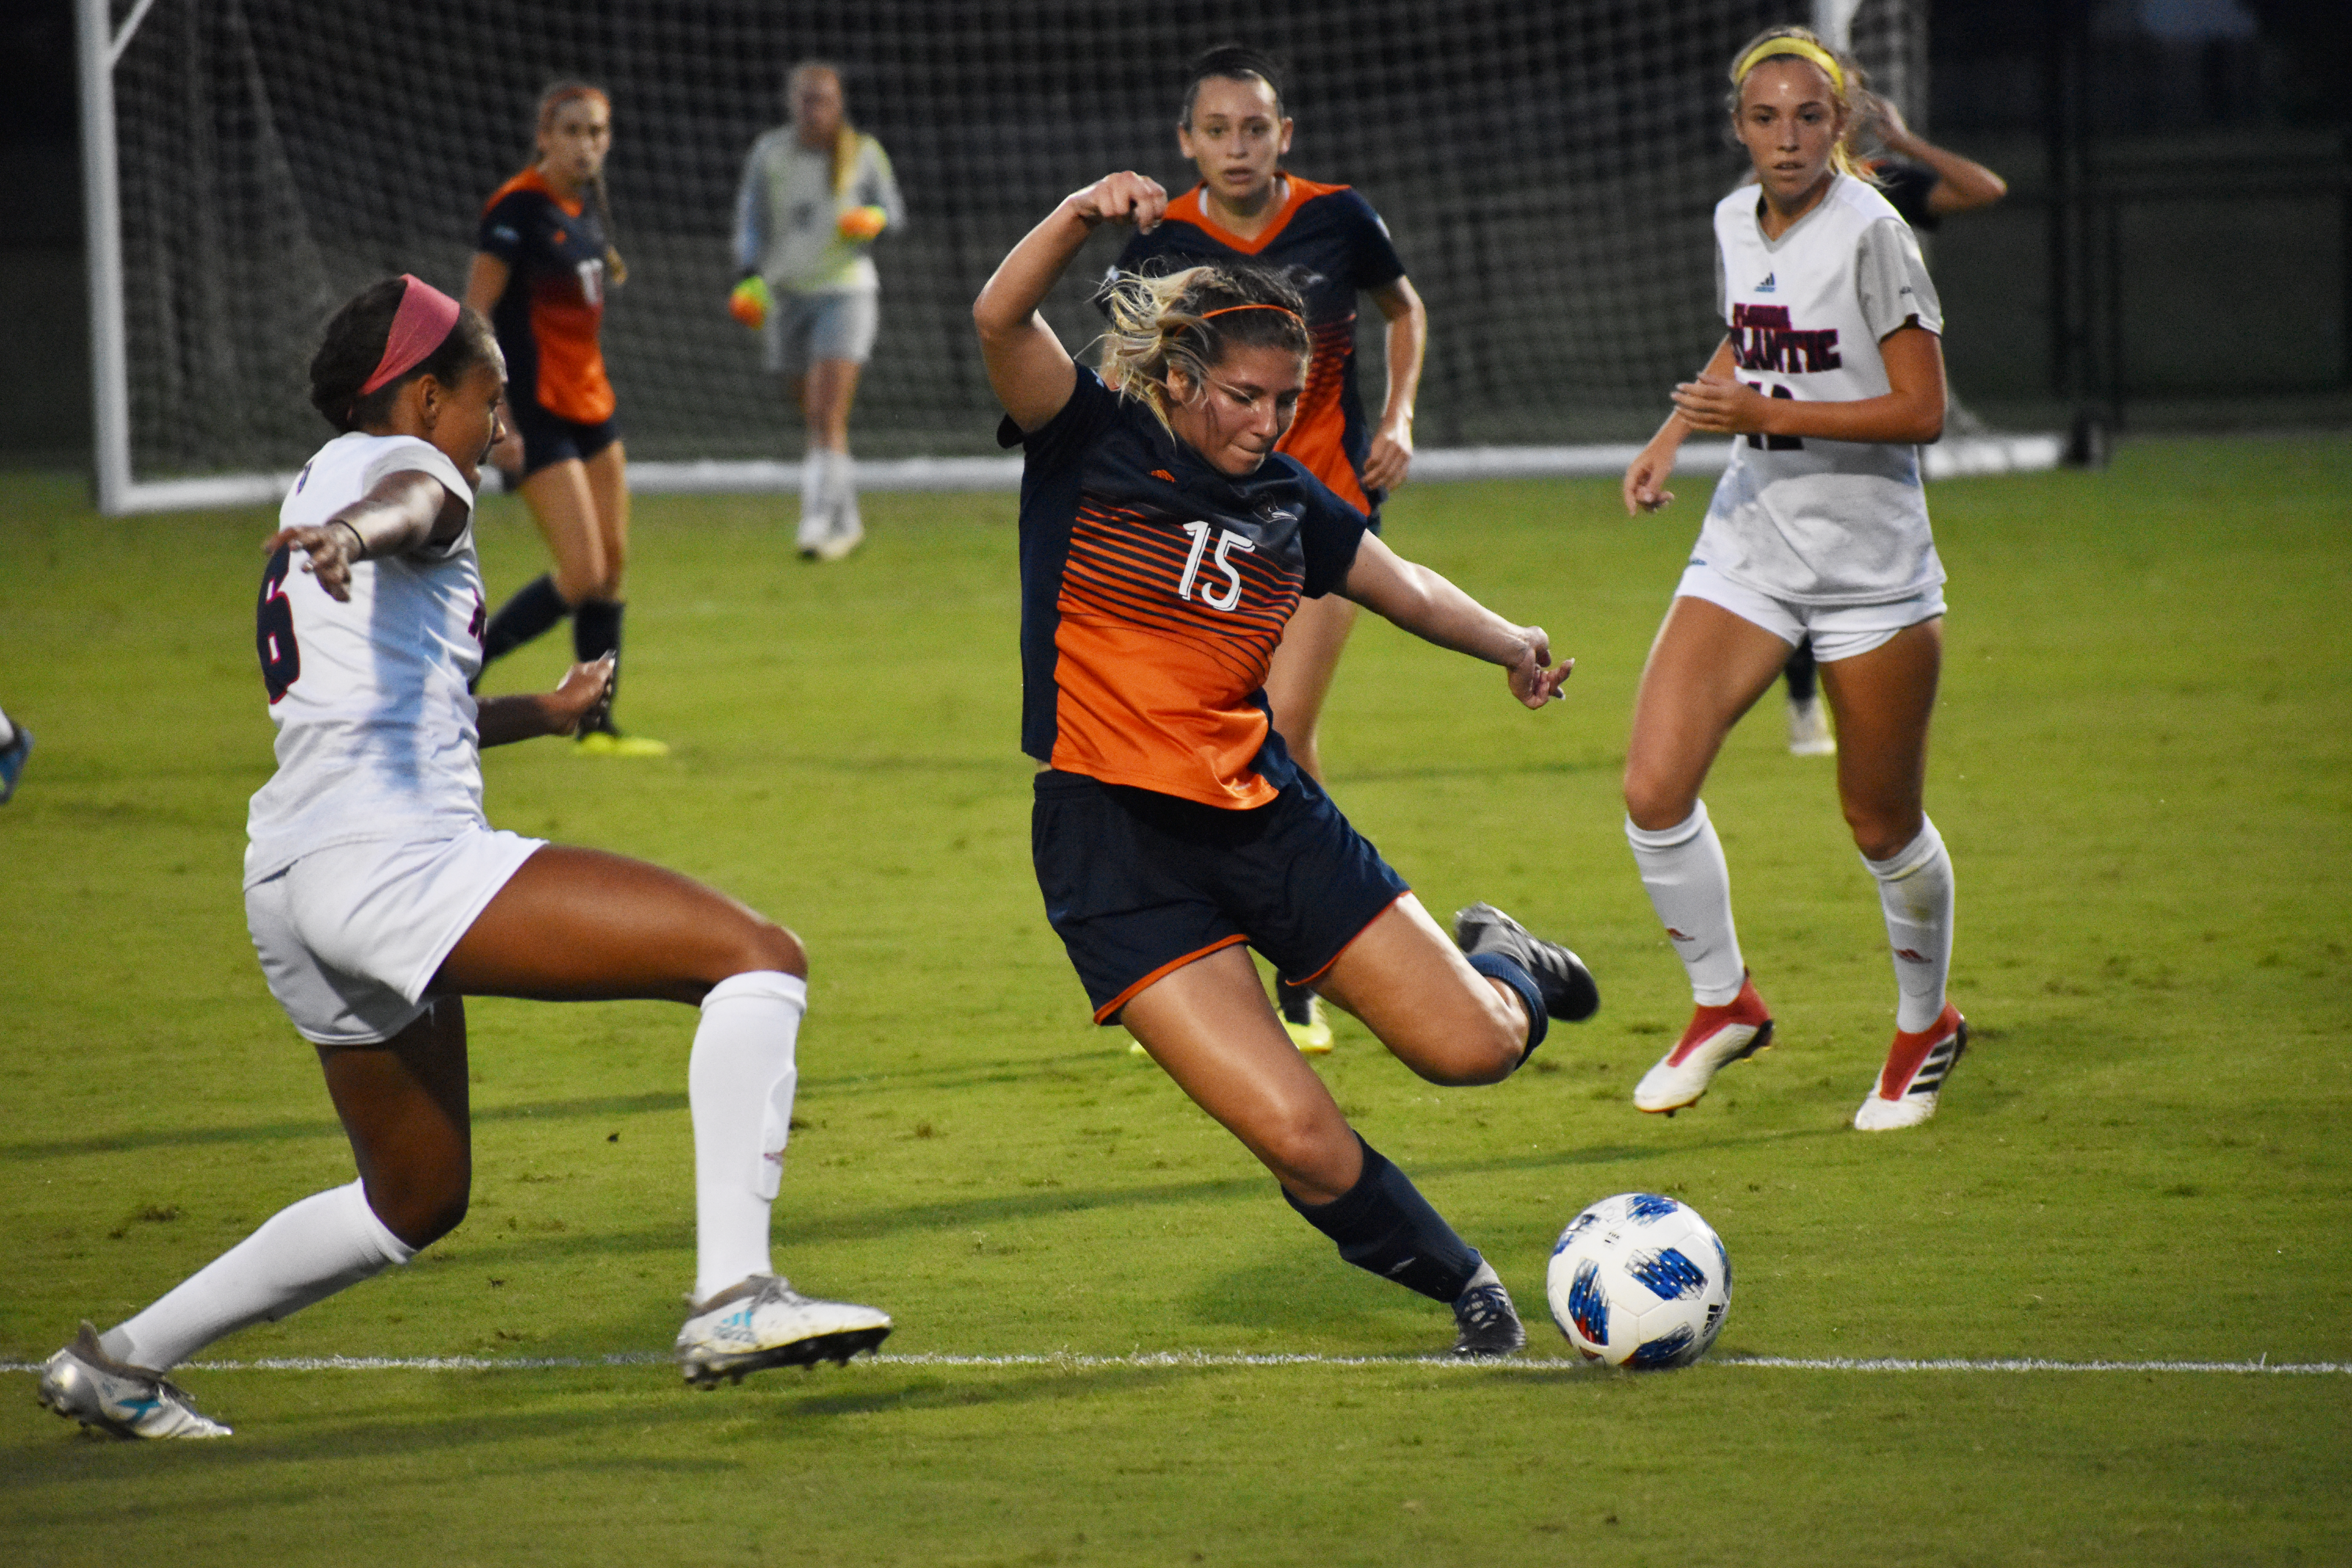 Jordan Lacy kicks a ball against FAU last Friday.